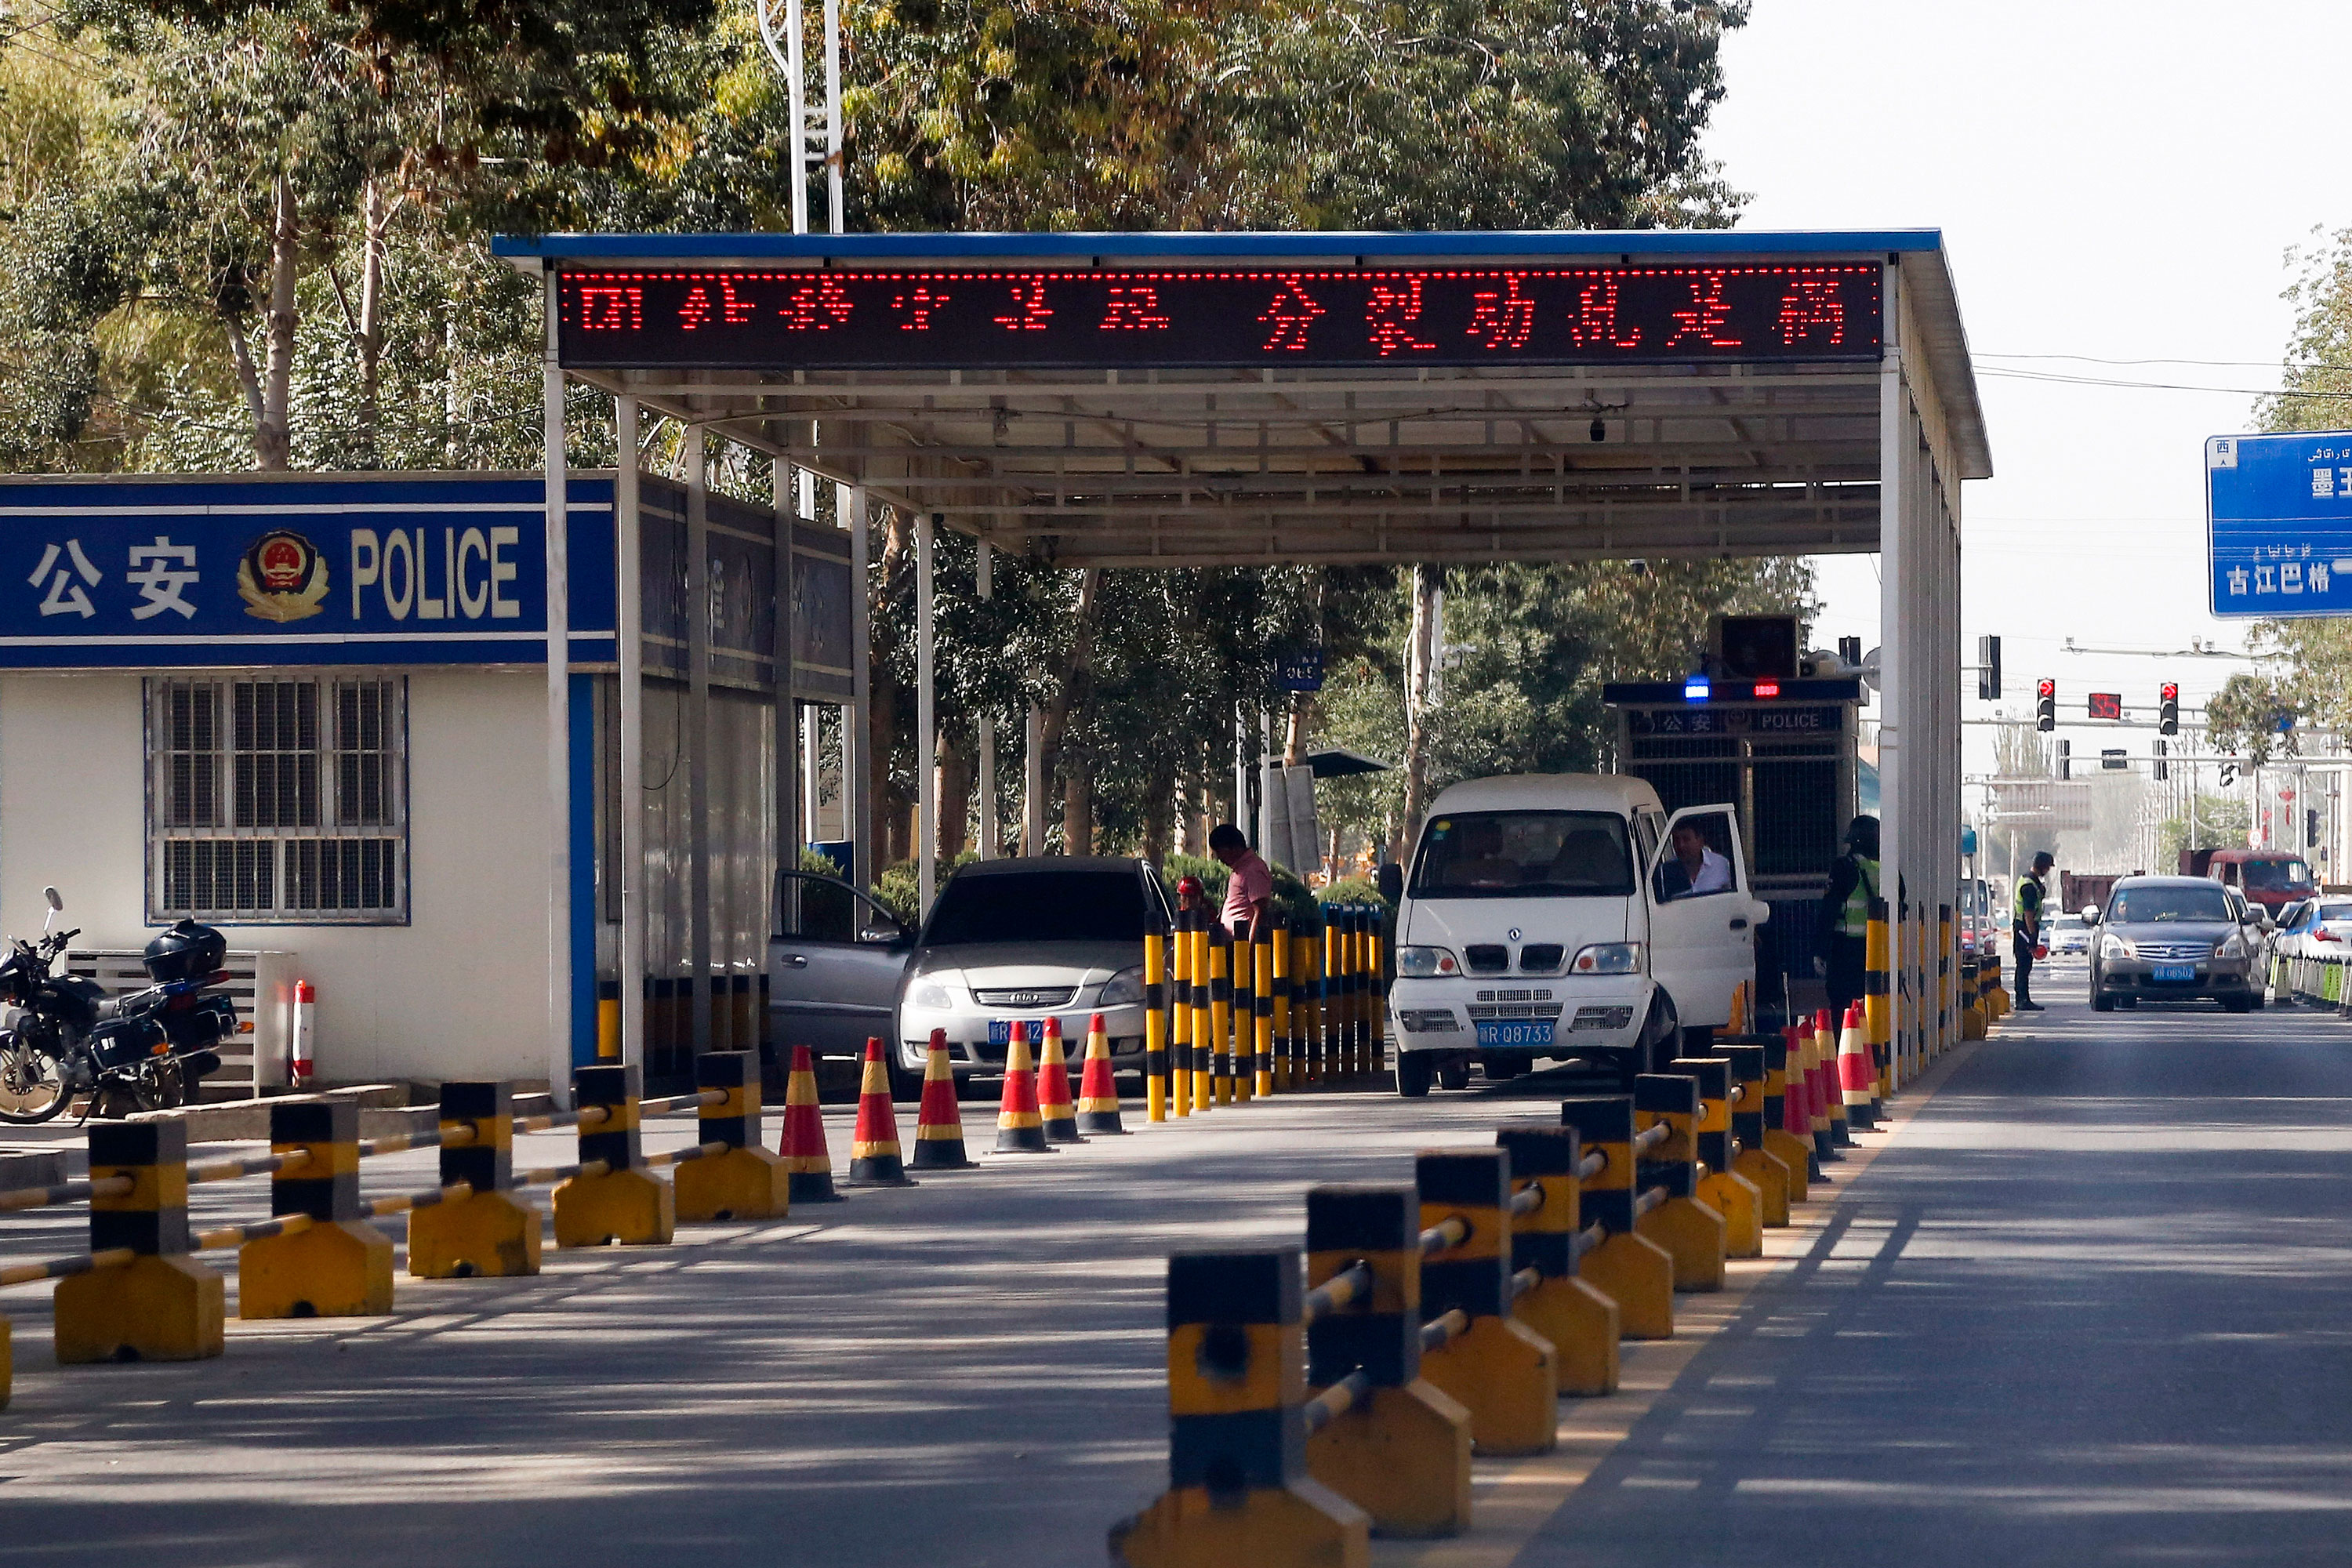 Chinese border guards are putting a surveillance app on